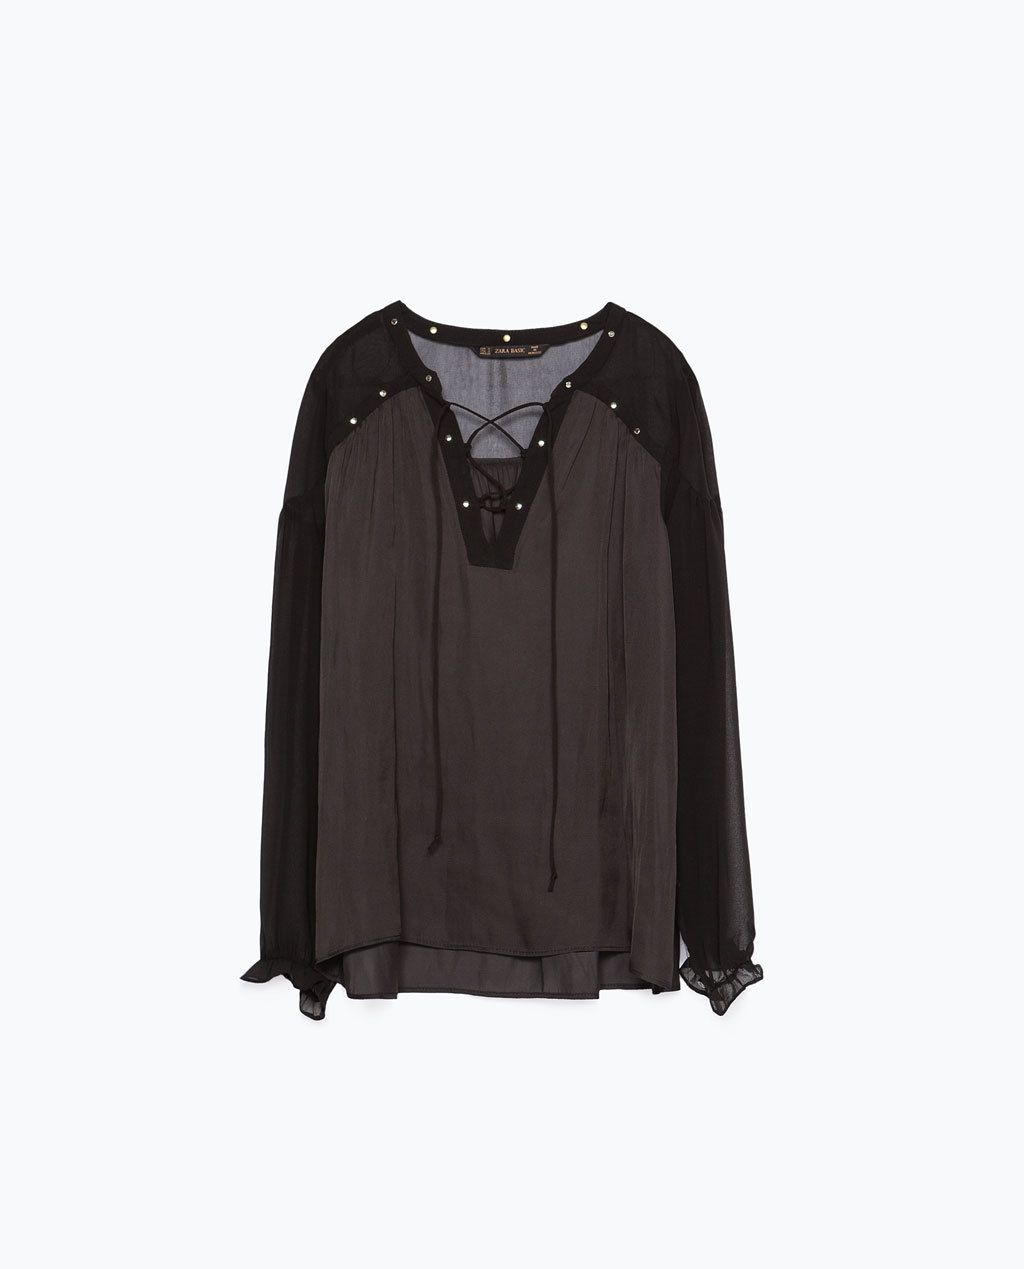 Studded Satin Blouse - neckline: v-neck; pattern: plain; style: blouse; predominant colour: black; occasions: casual, evening; length: standard; fit: loose; sleeve length: long sleeve; sleeve style: standard; texture group: sheer fabrics/chiffon/organza etc.; pattern type: fabric; season: s/s 2015